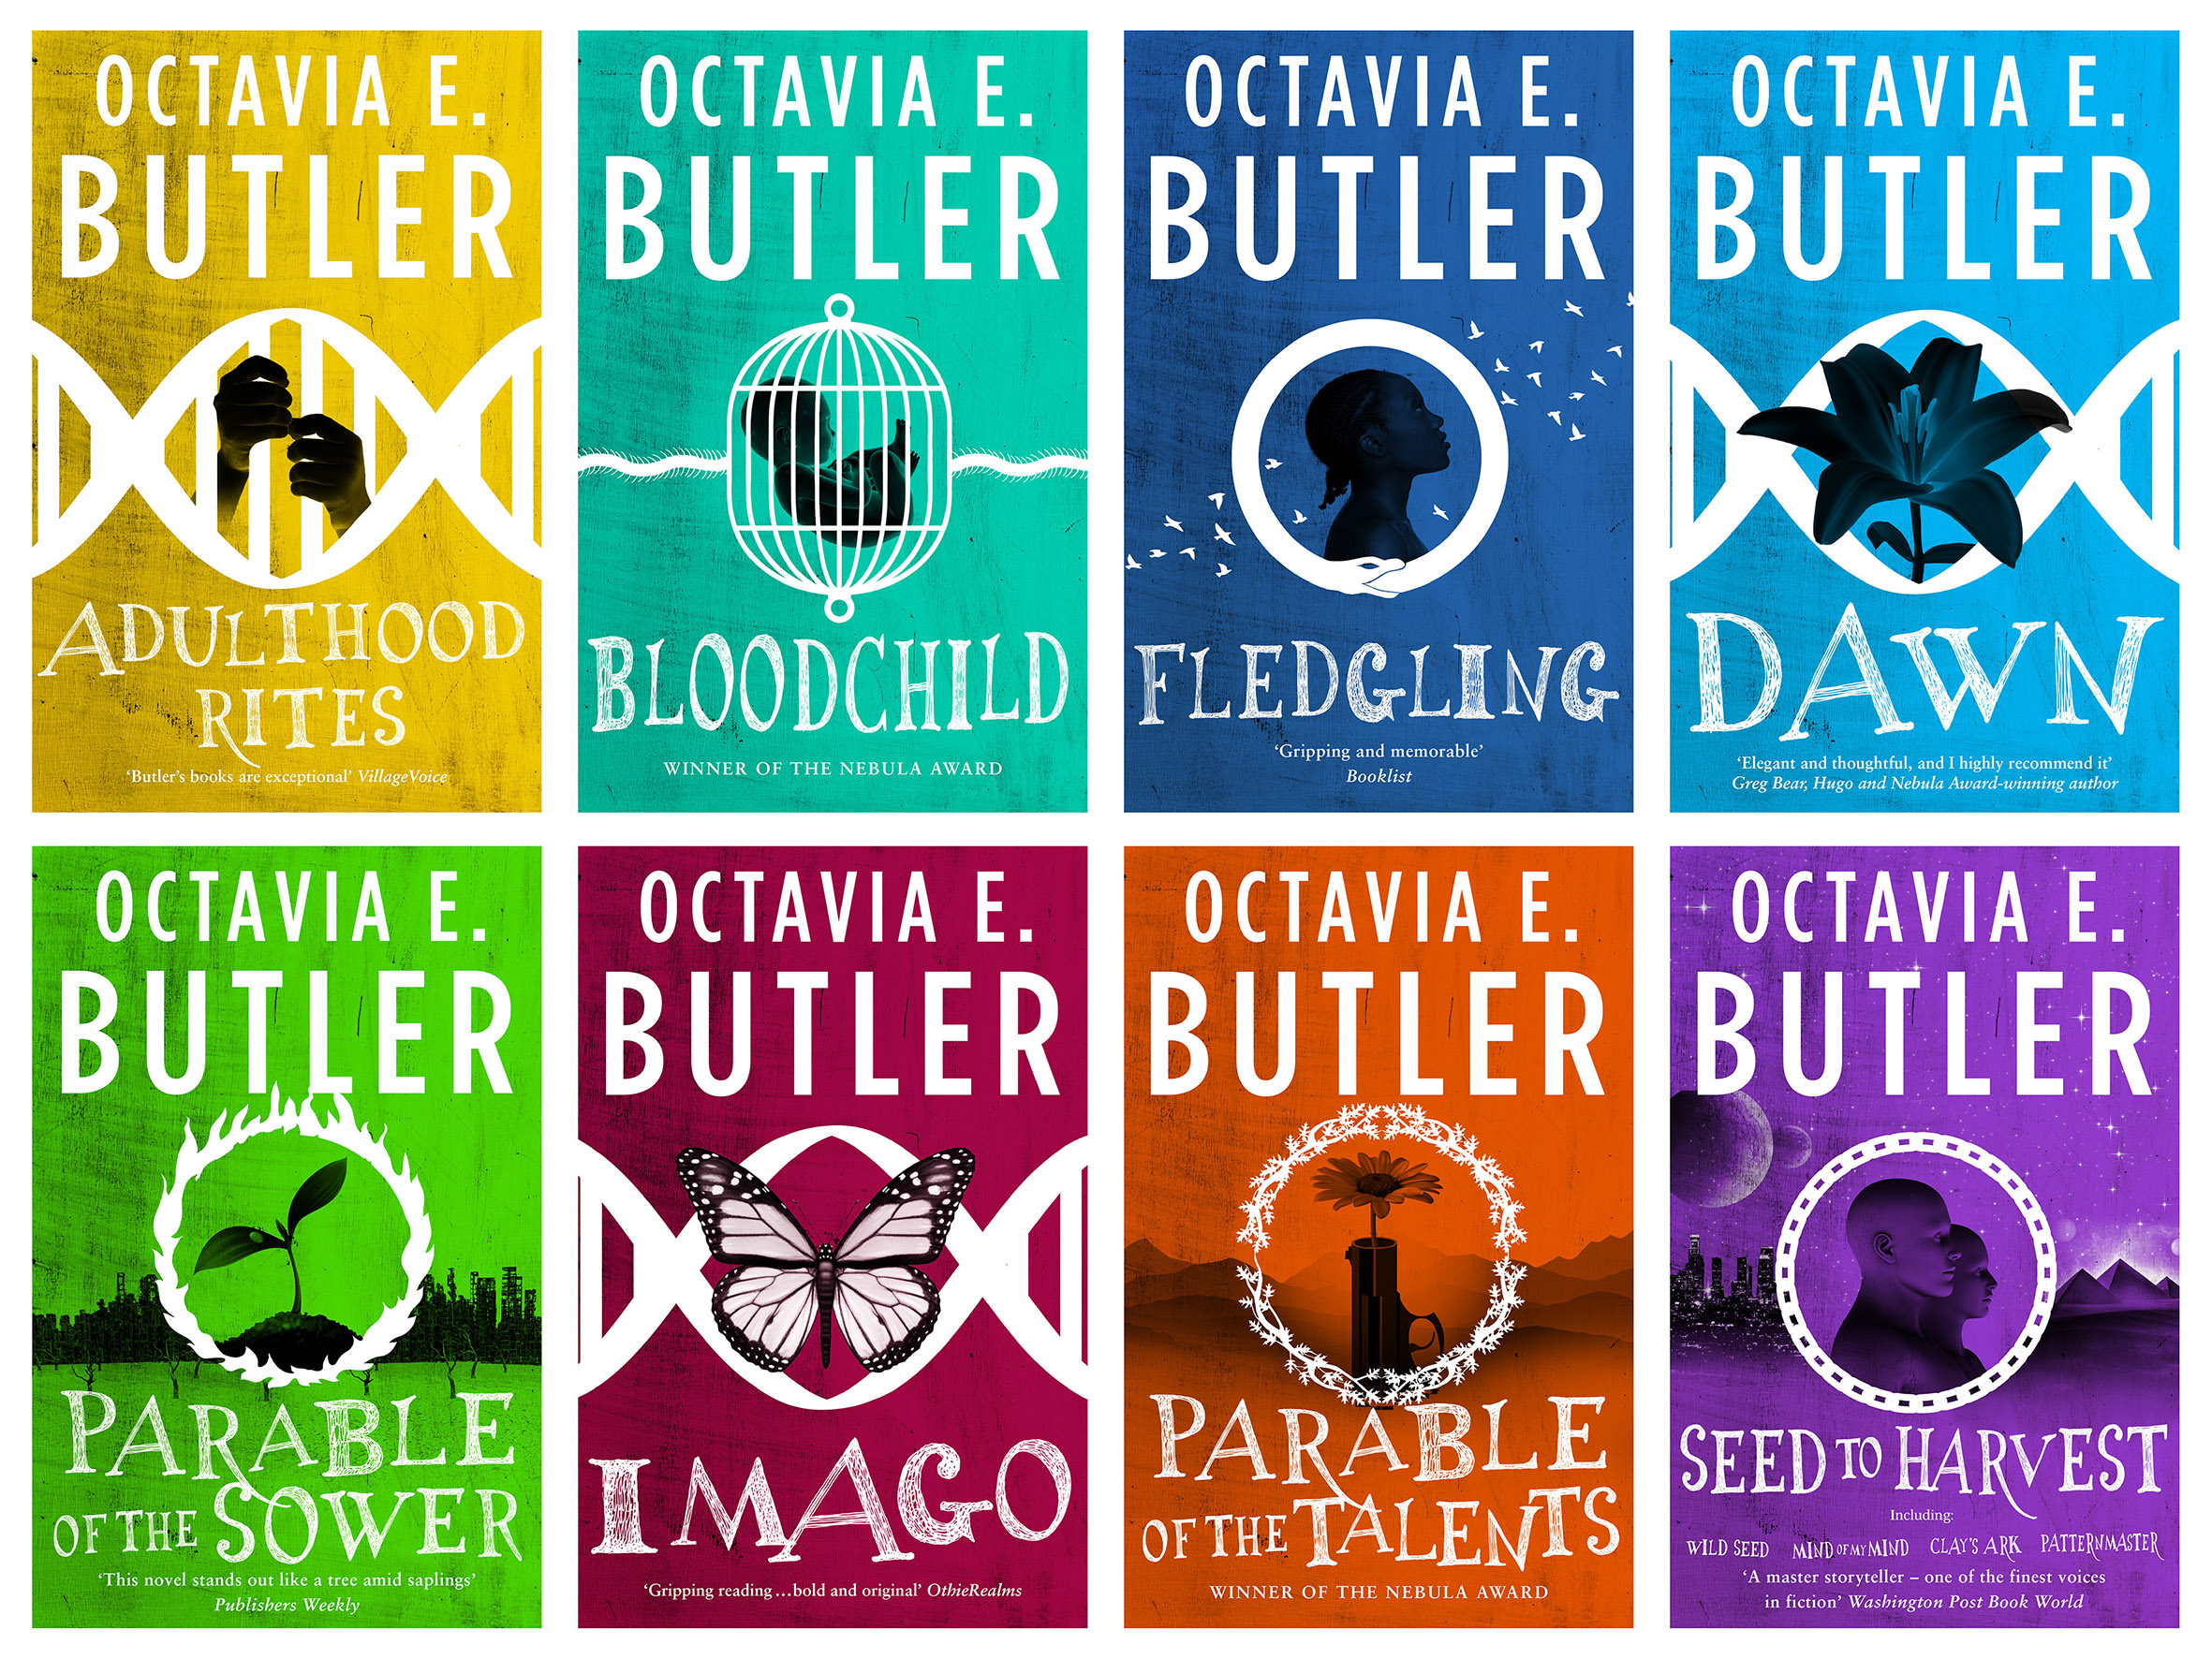 Image result for octavia butler books""